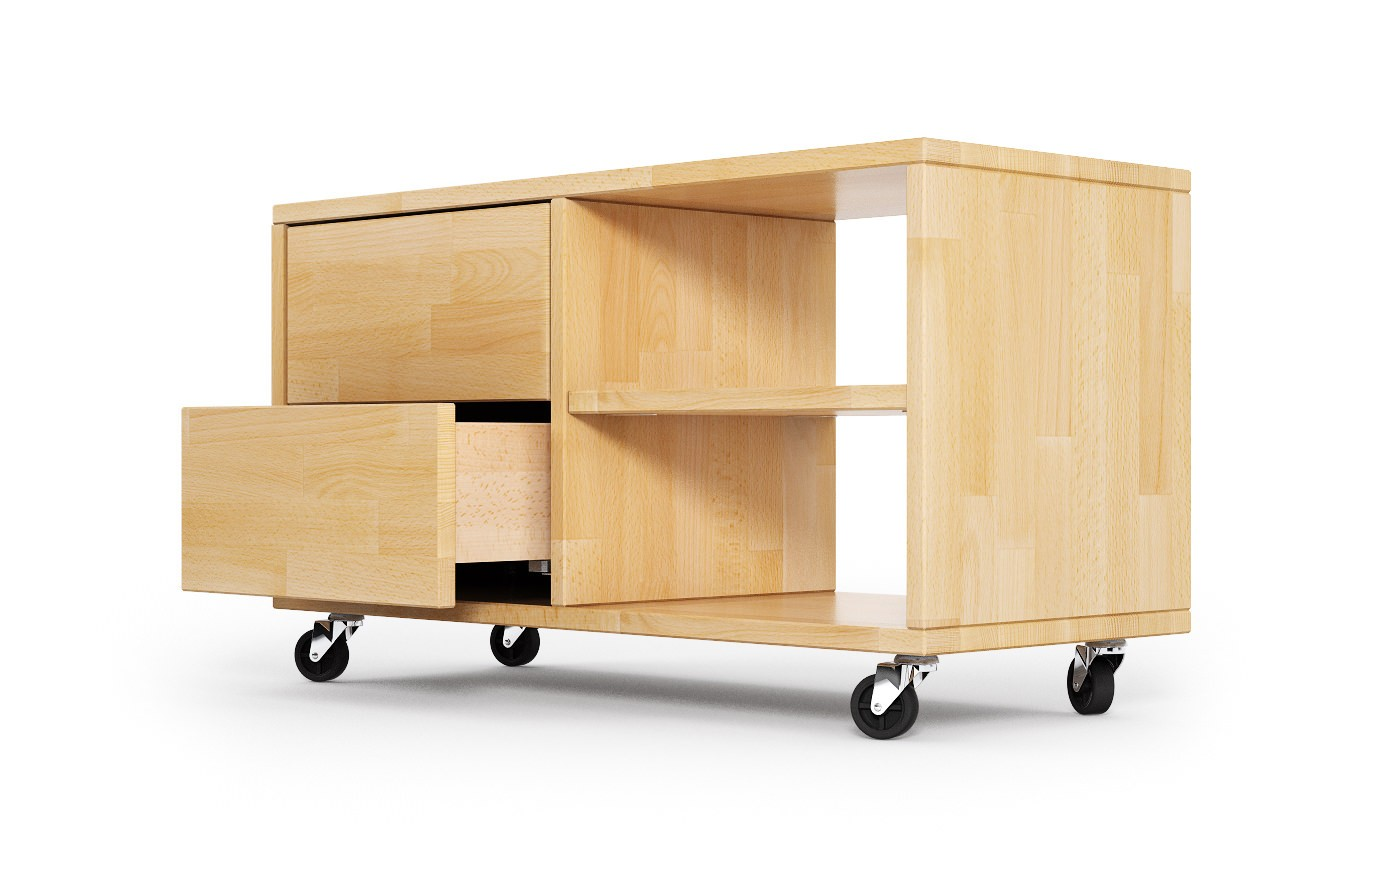 bender in buche hifi rollcontainer nach ma. Black Bedroom Furniture Sets. Home Design Ideas